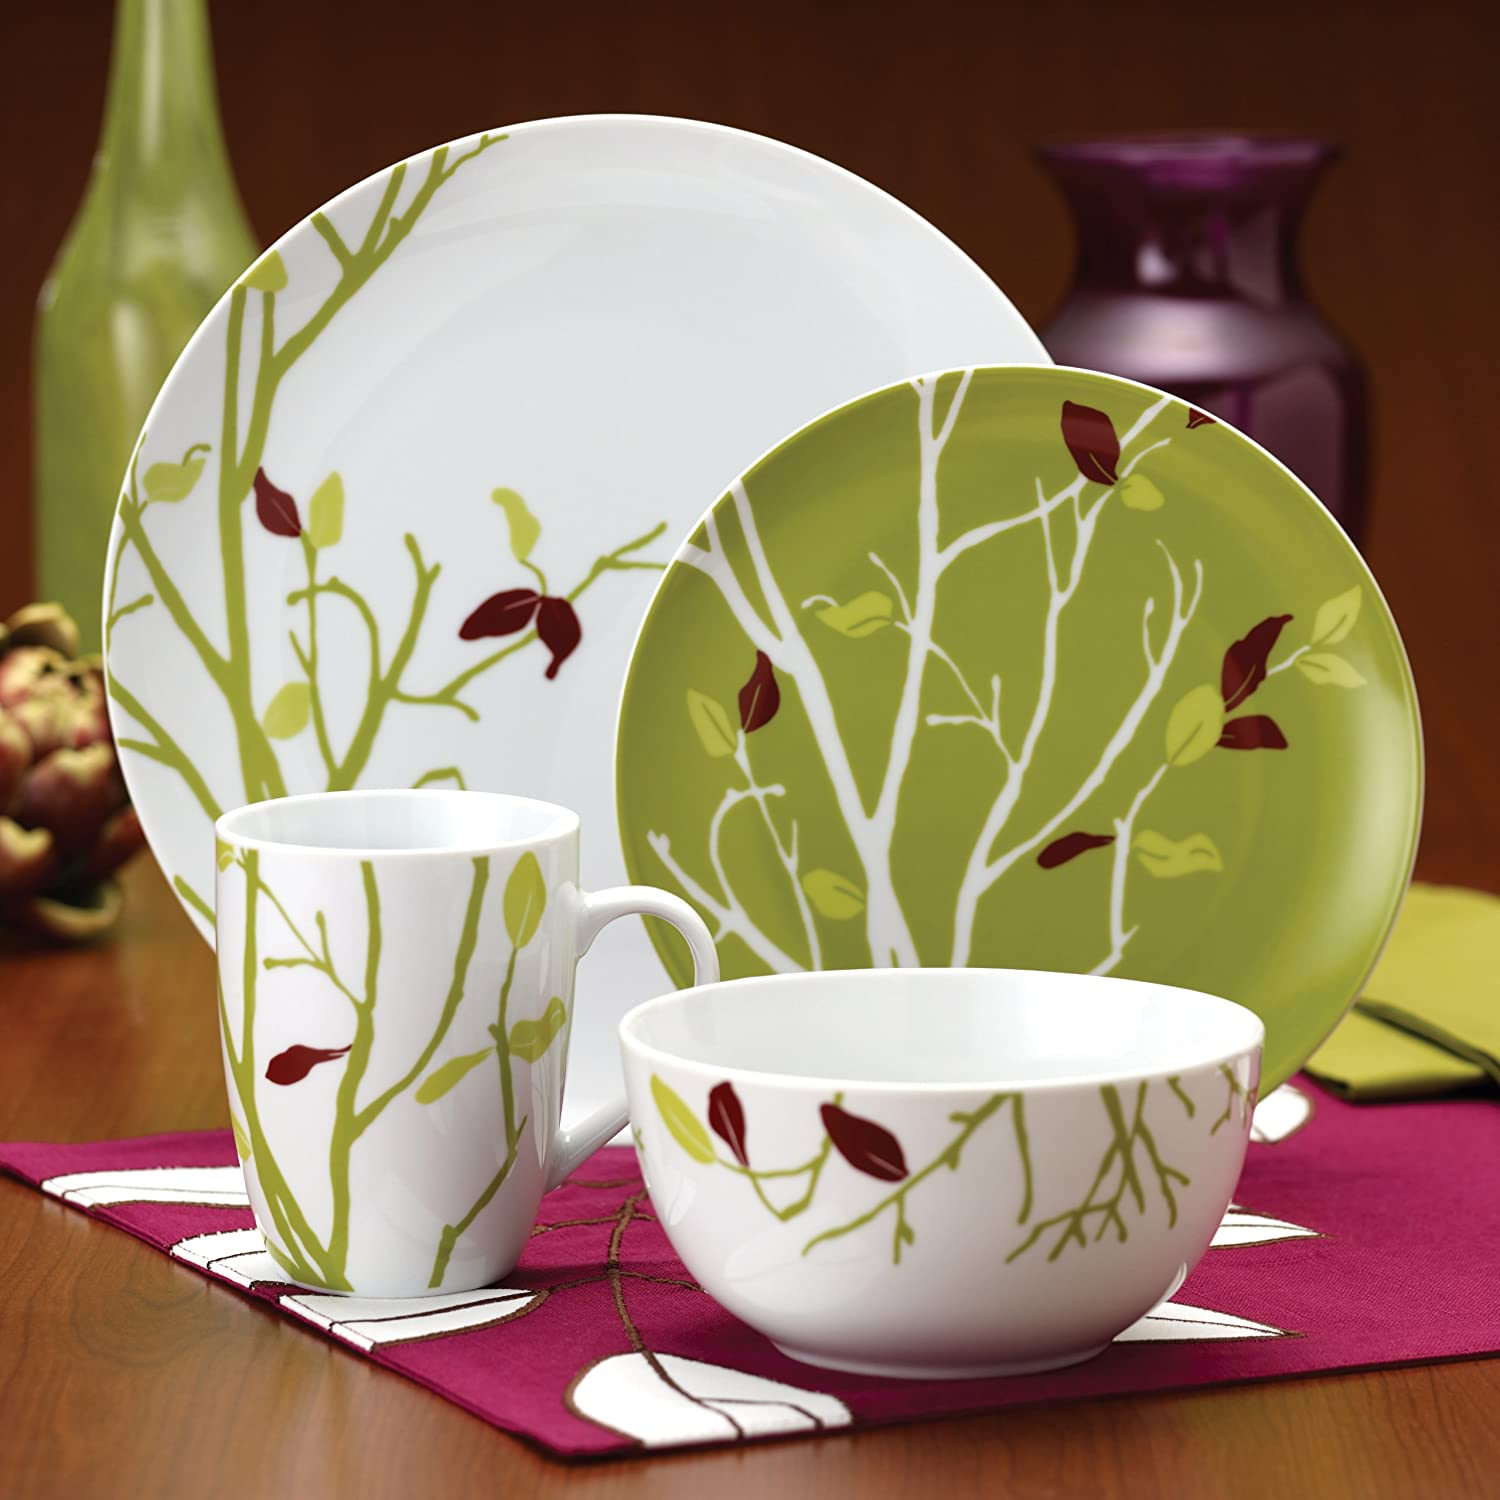 Amazon.com | Rachael Ray Dinnerware Seasons Changing 10-Inch Serving Bowl Crockery Serving Bowls & Amazon.com | Rachael Ray Dinnerware Seasons Changing 10-Inch Serving ...